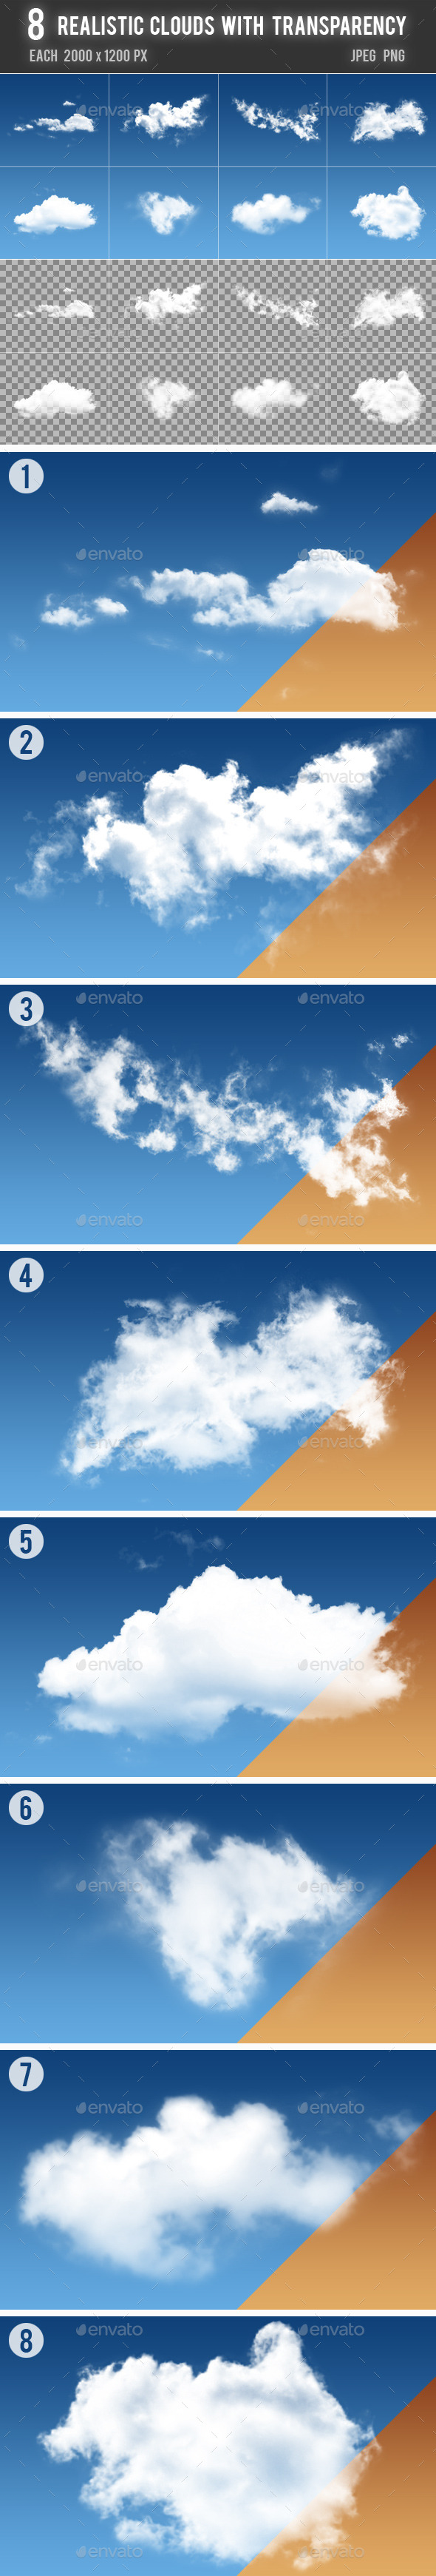 8 Realistic Clouds with Transparency